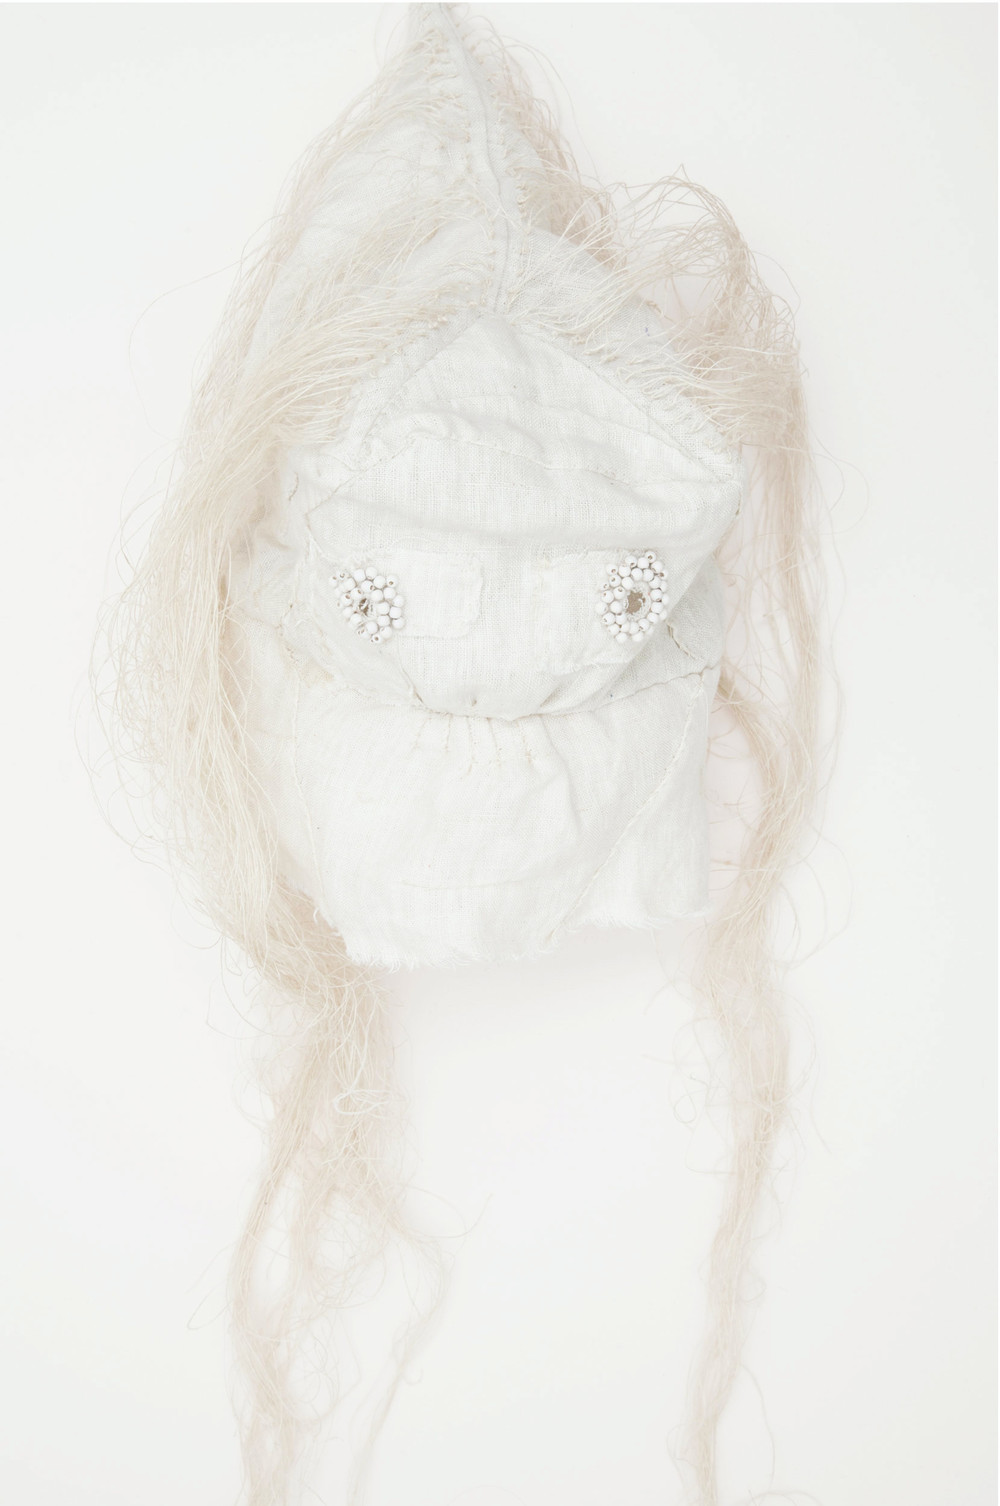 Mask (white) / 2015 textiles and div. materials 25 x 25 x 70cm